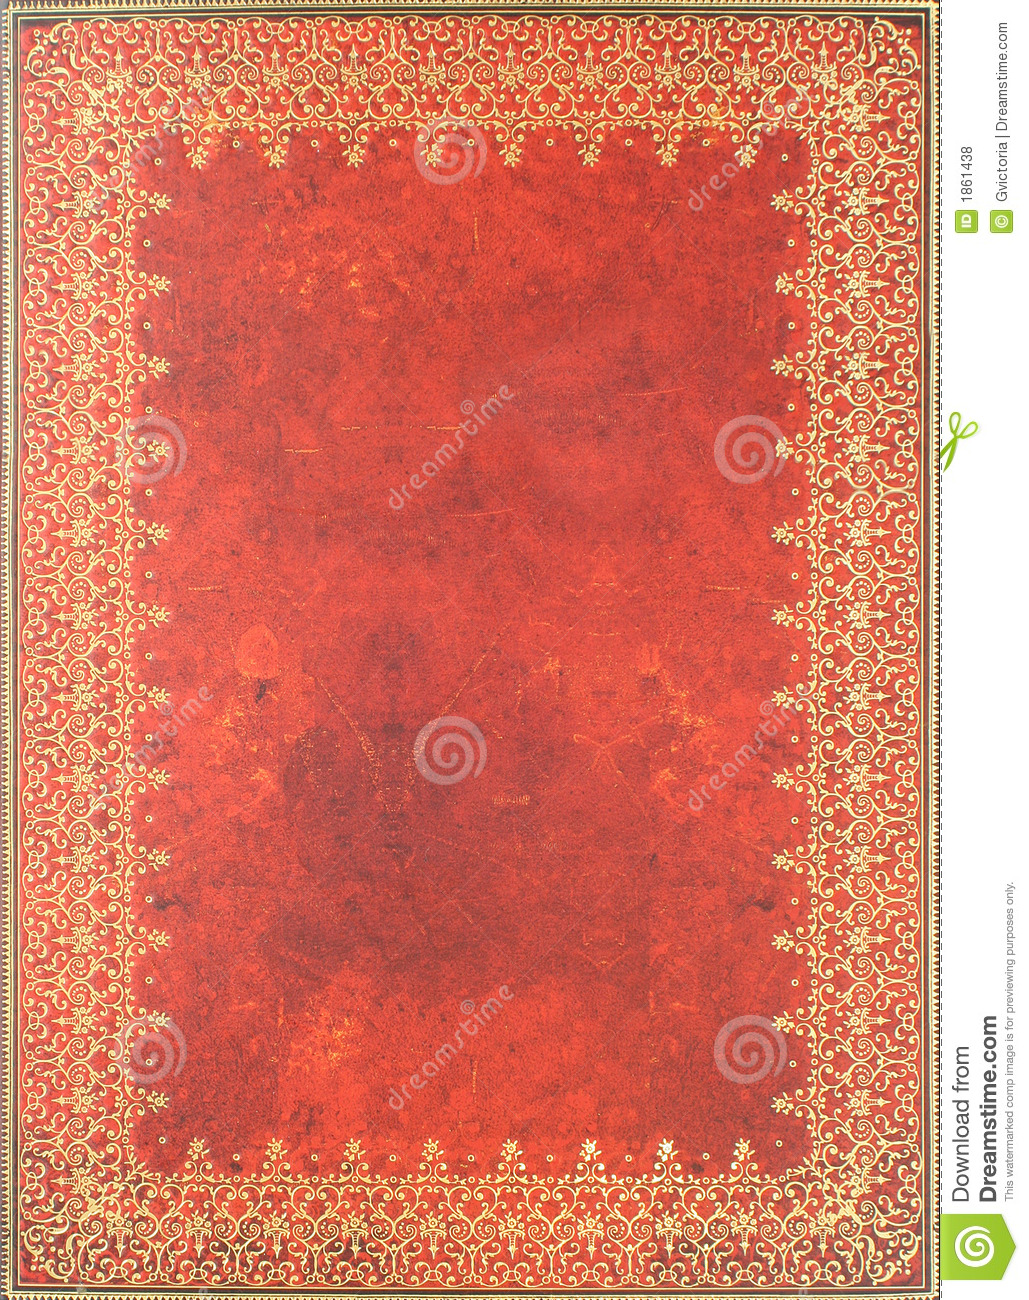 Vintage Book Cover Background : Vintage book background stock photo image of